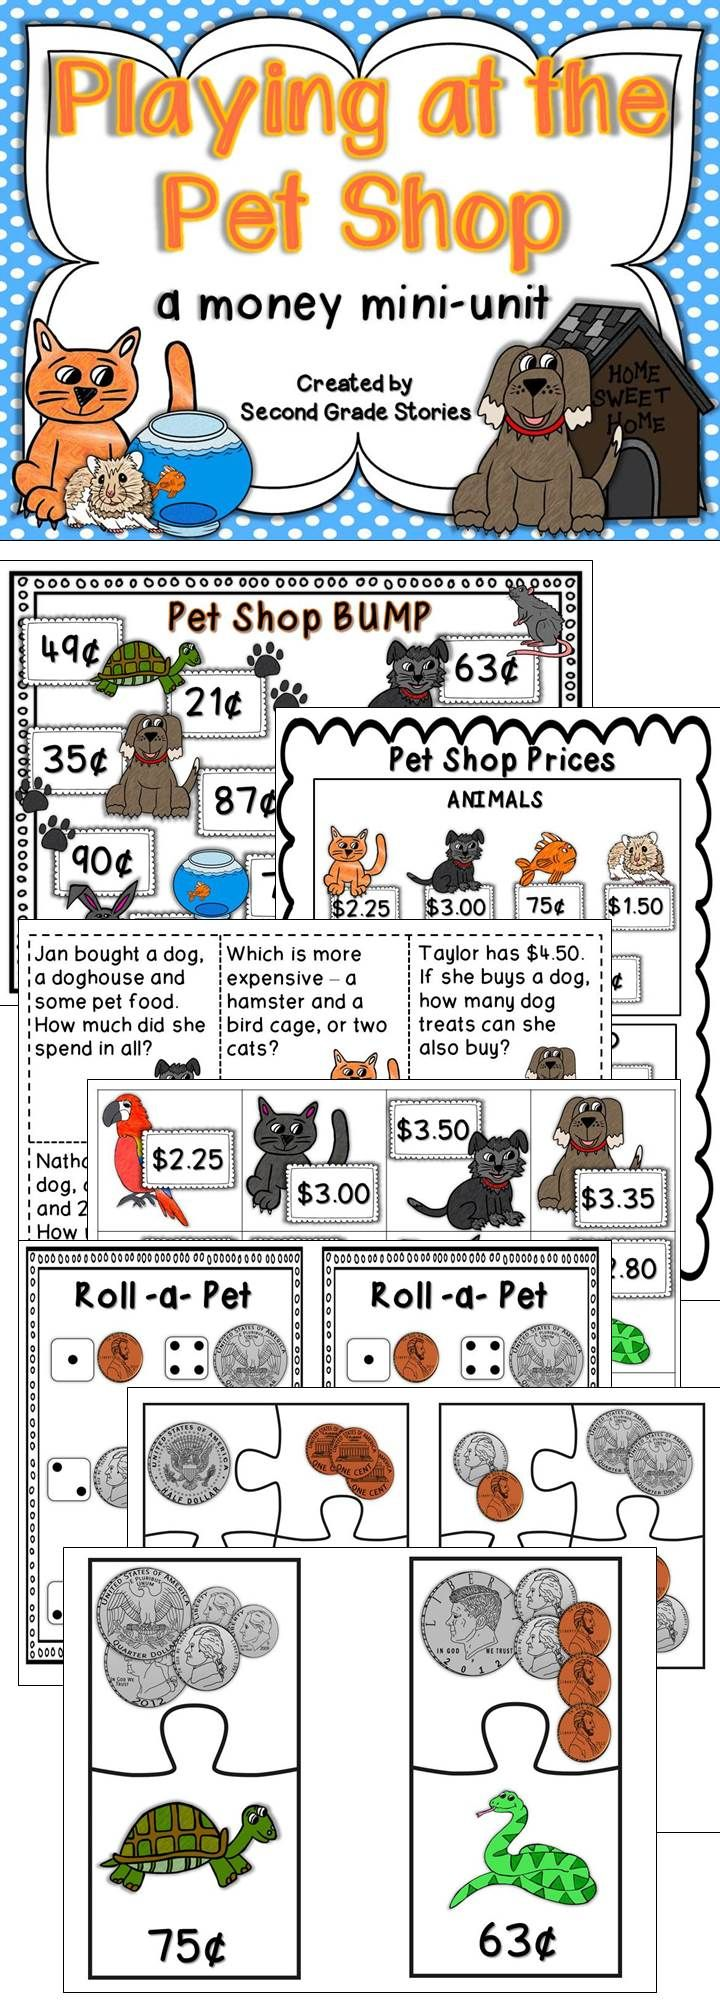 Fun games and activities to review money skills with a pet theme. Roll the dice, use play money, problem solving and more.